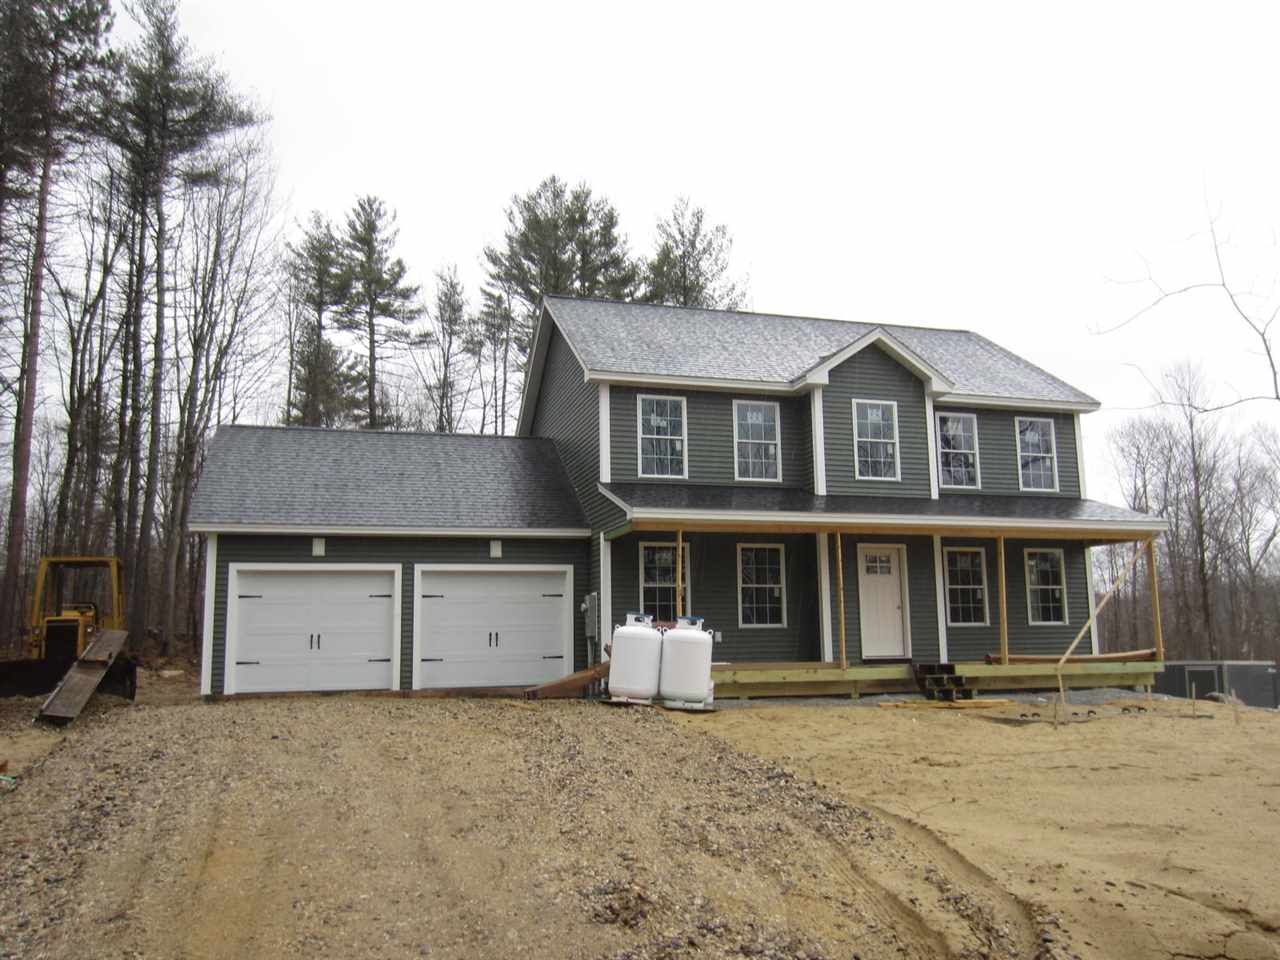 Photo of 17-2 Fieldstone Drive Deerfield NH 03037